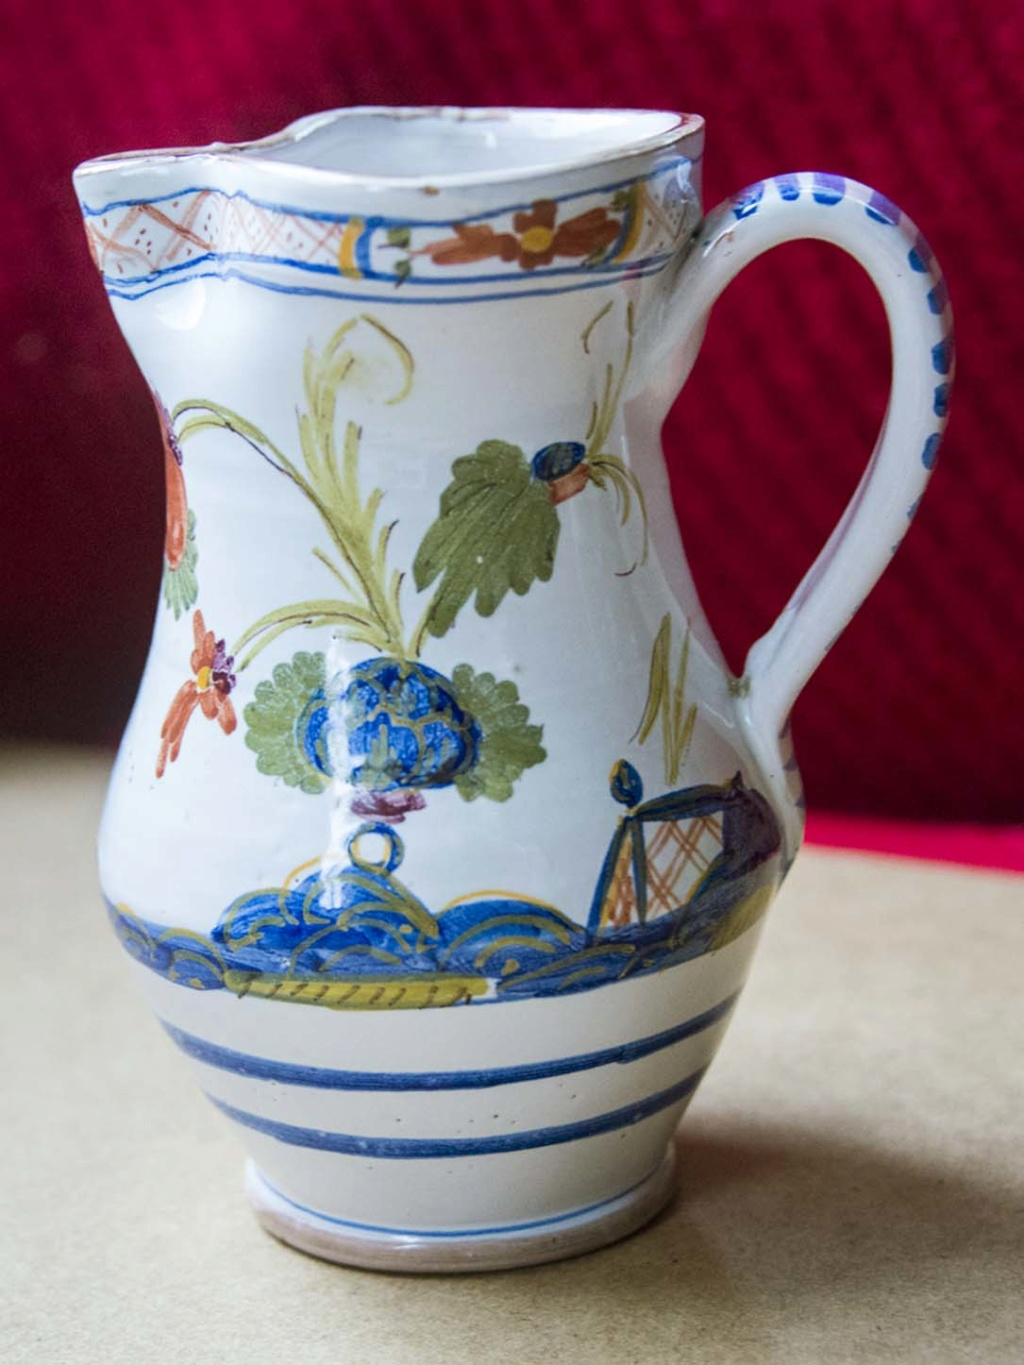 Nice hand-painted jug with no clues - does anyone recognise? Flower15